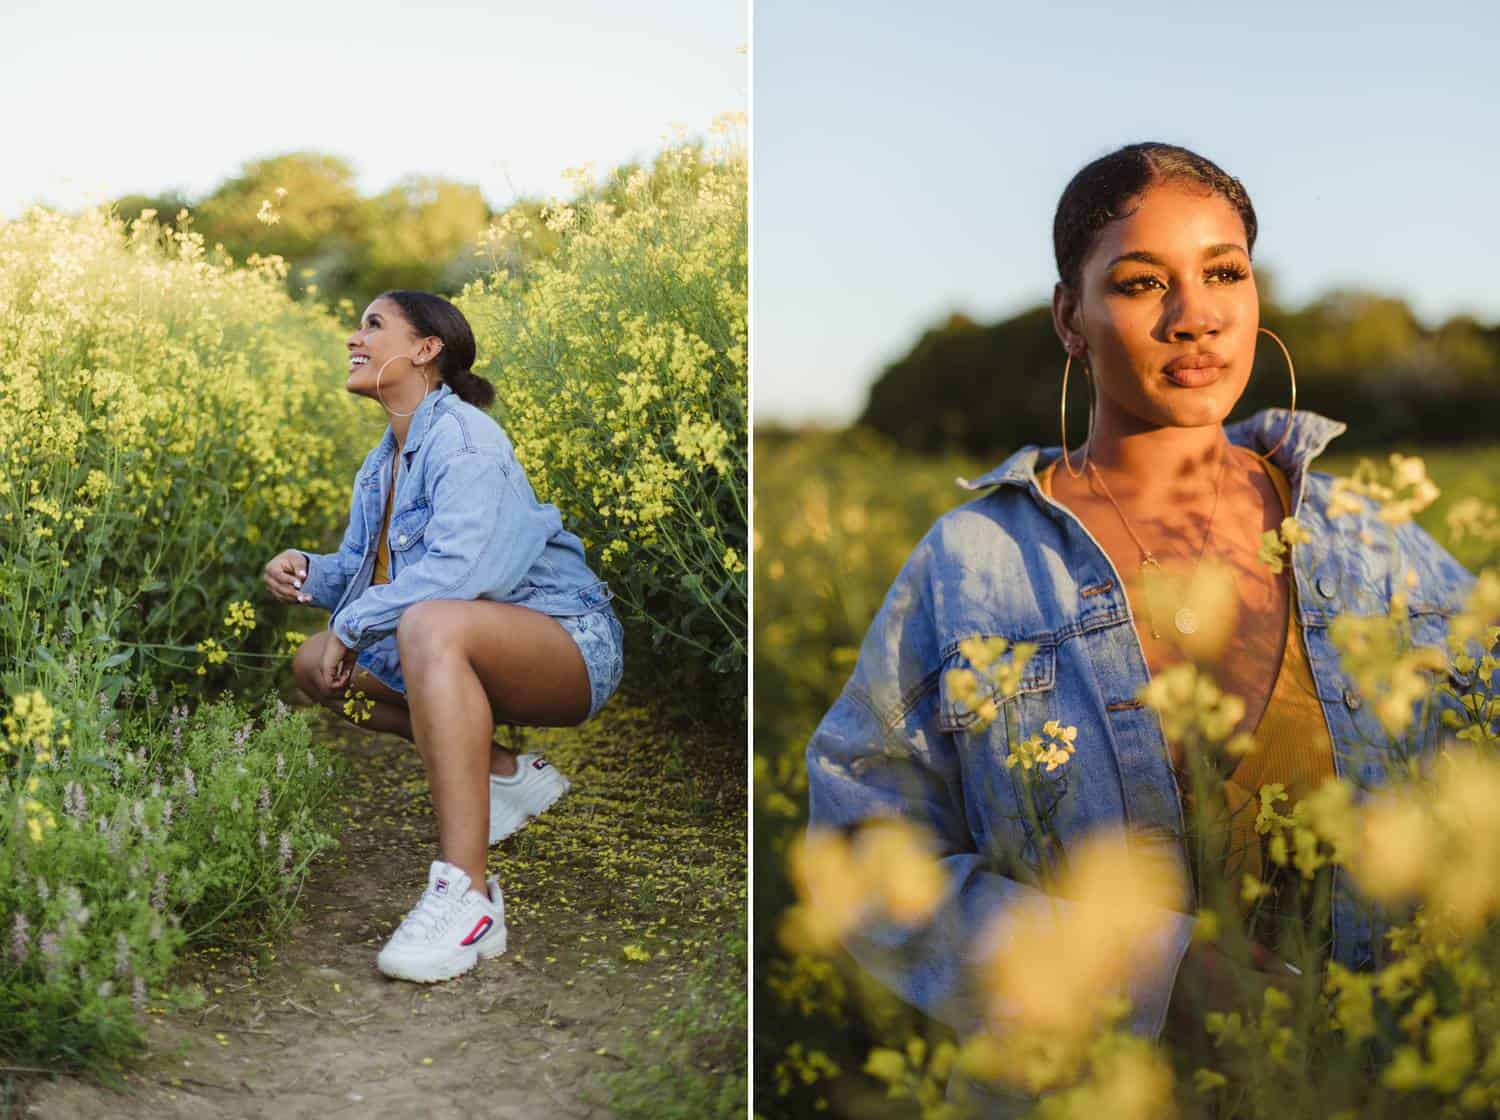 A young Latinx person wearing a denim shirt is photographed by Humphrey Muleba in a field full of wildflowers